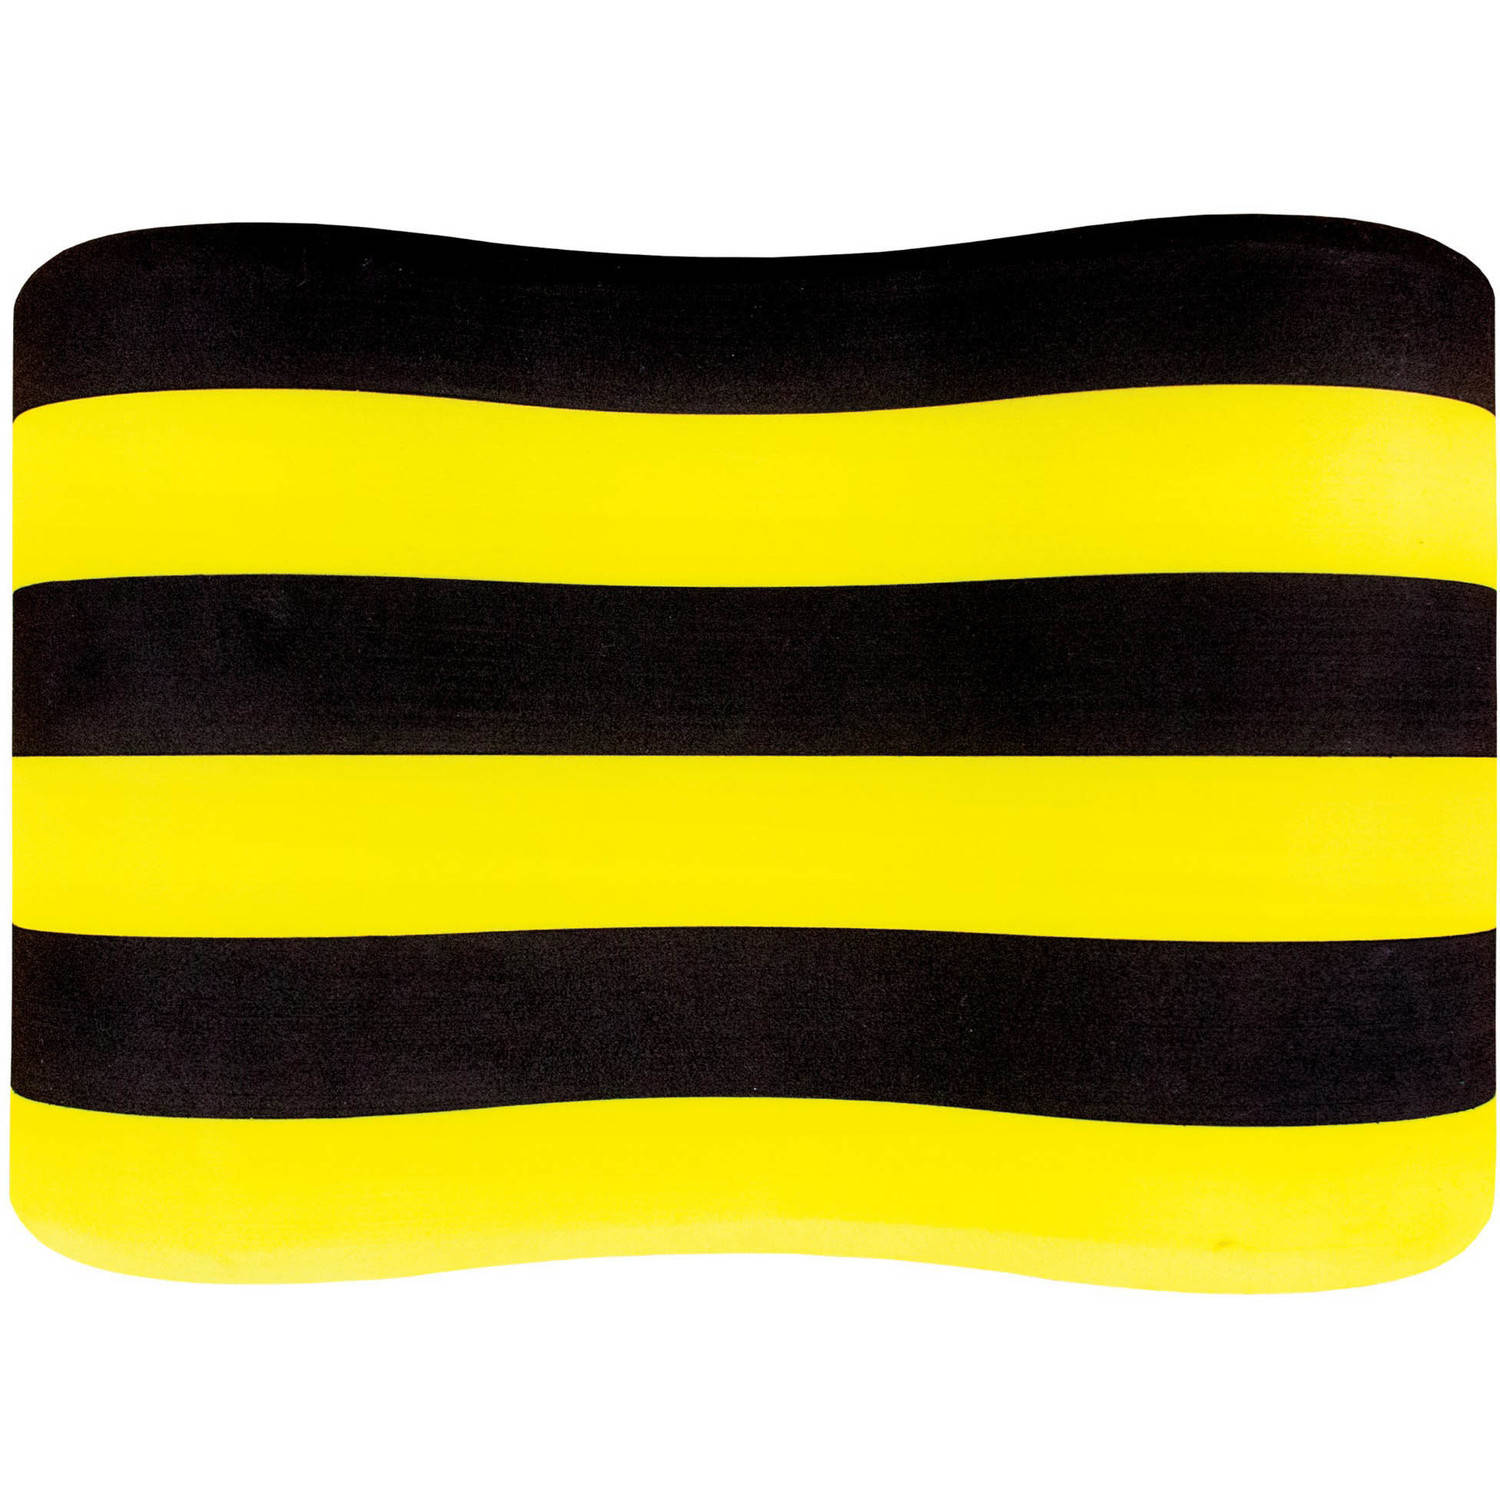 FINIS Foam Pull Buoy in Black and Yellow, Senior Size